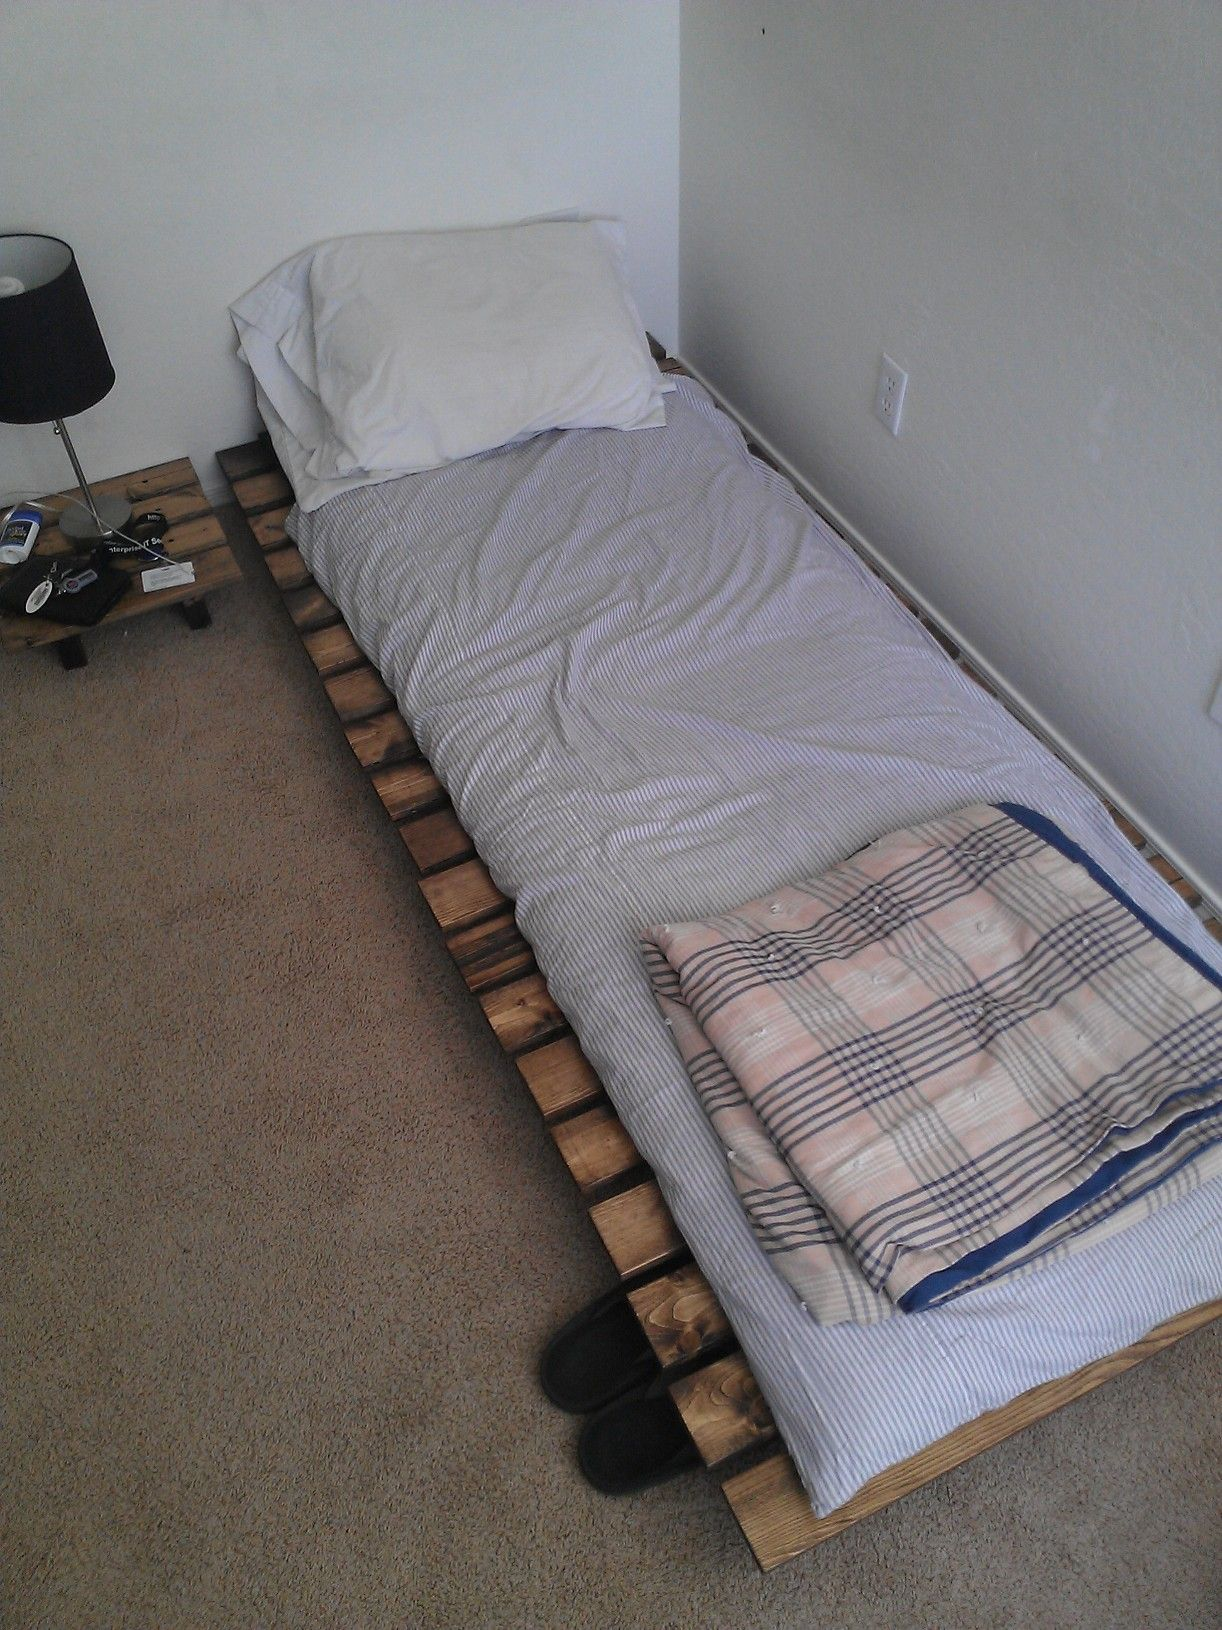 Muebles Futon Homemade Bed Nightstand And Japanese Futon Work Shop